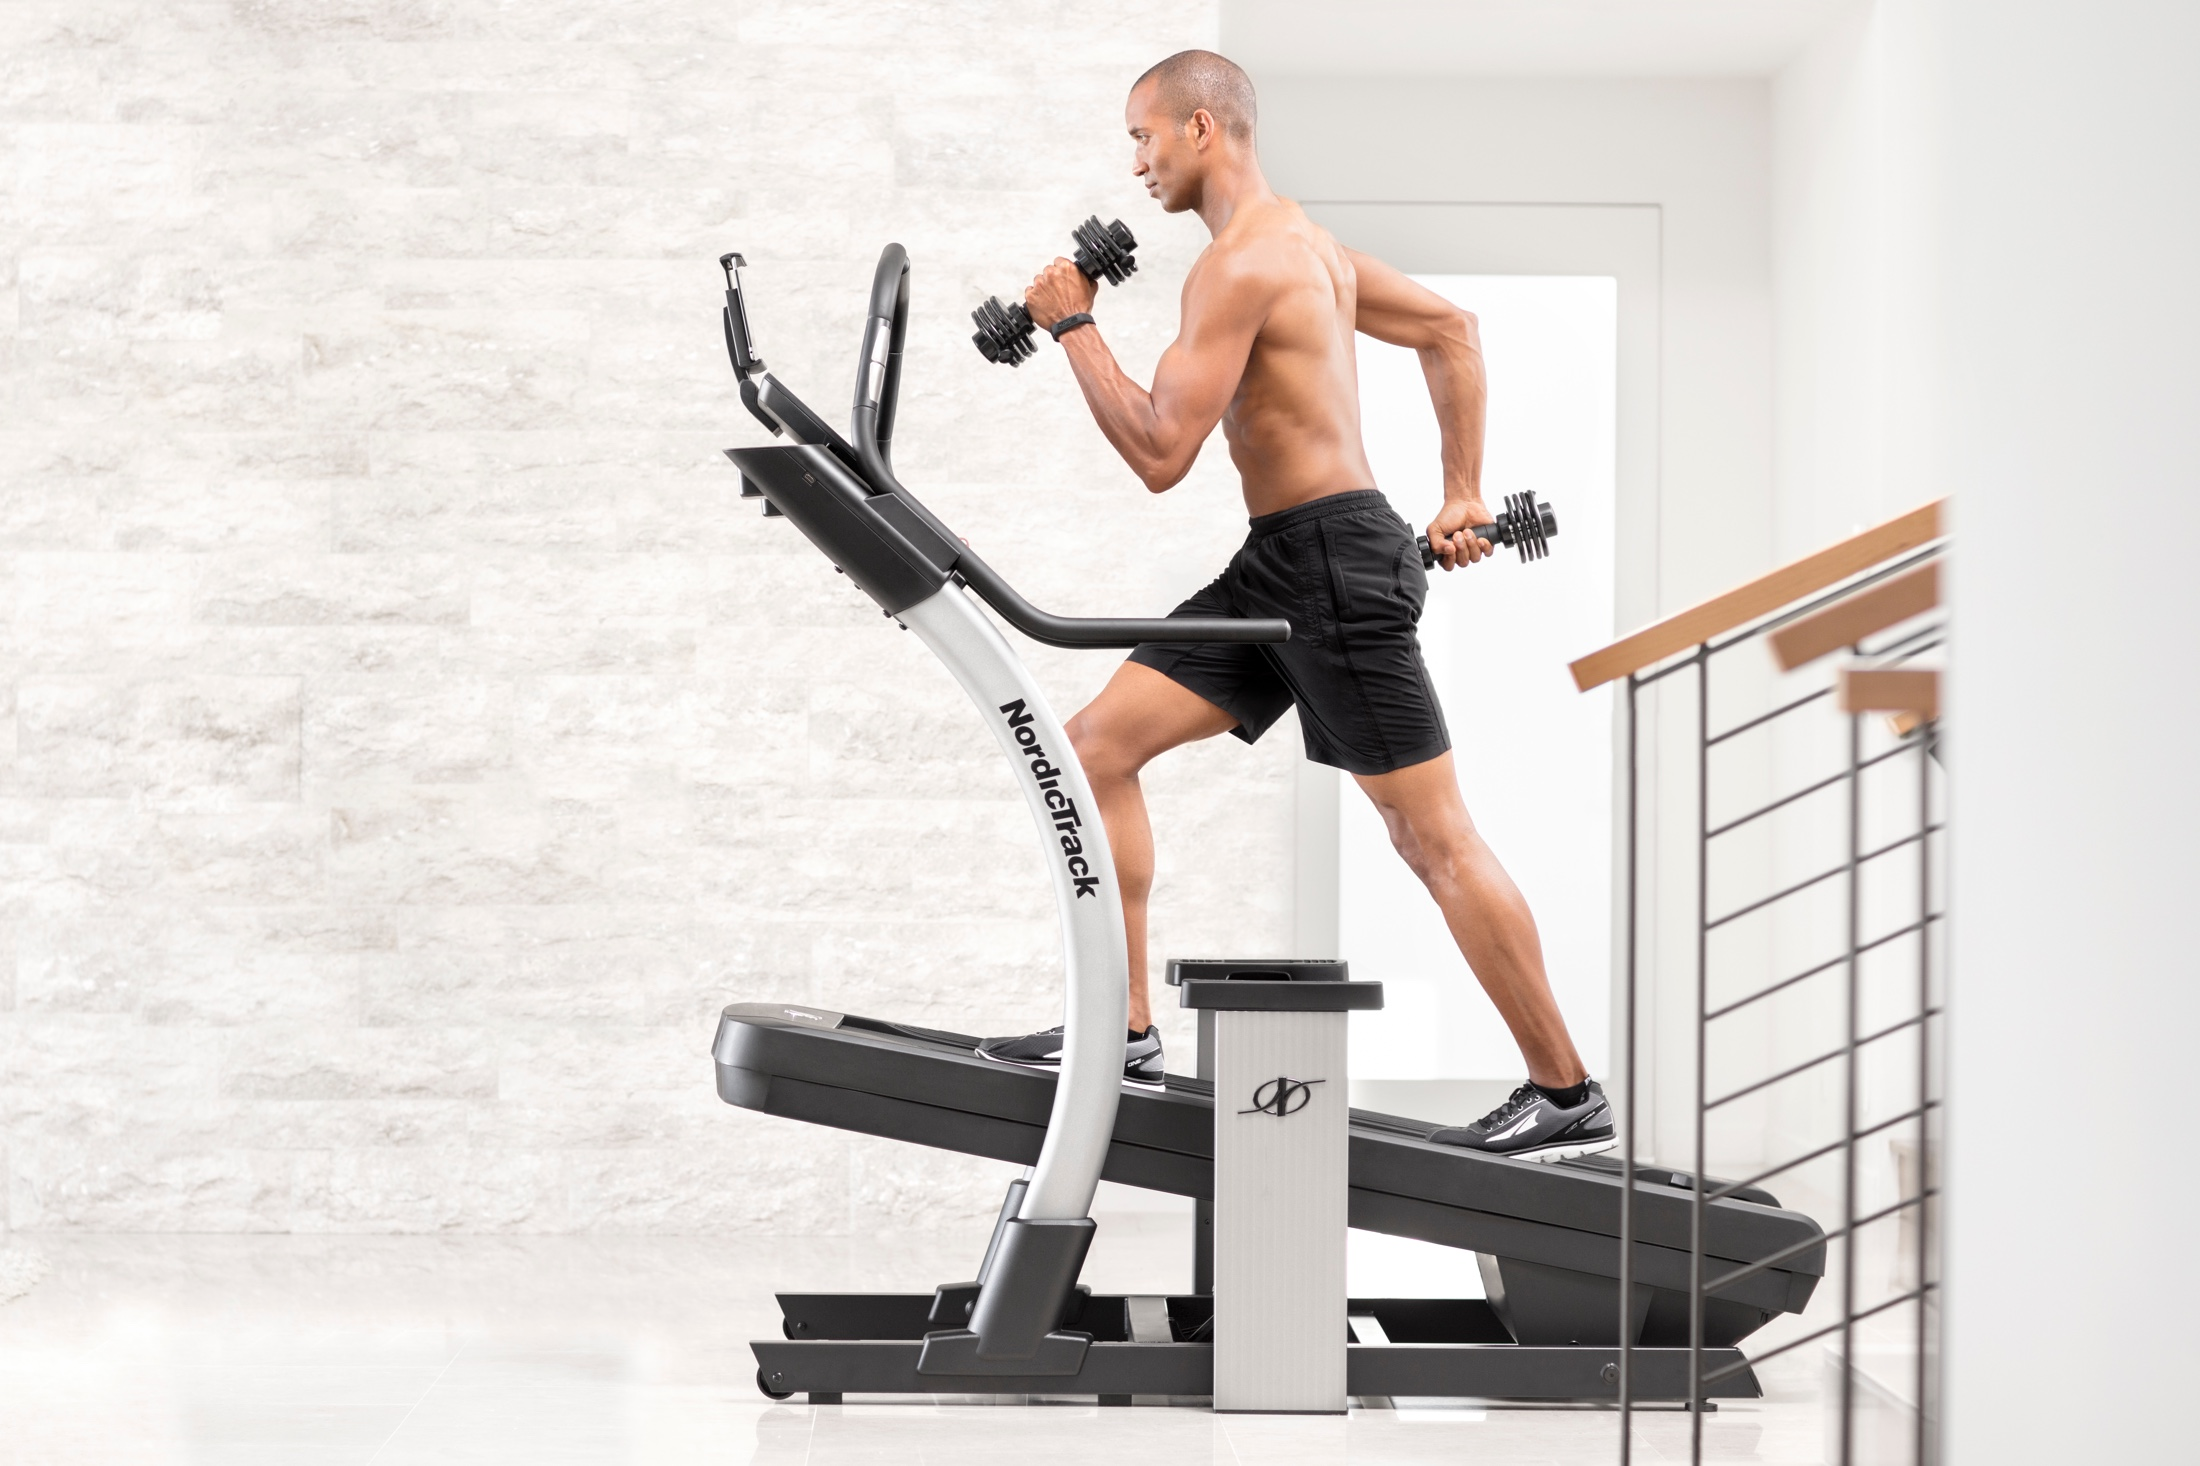 NordicTrack X9i Incline Trainer gallery image 4